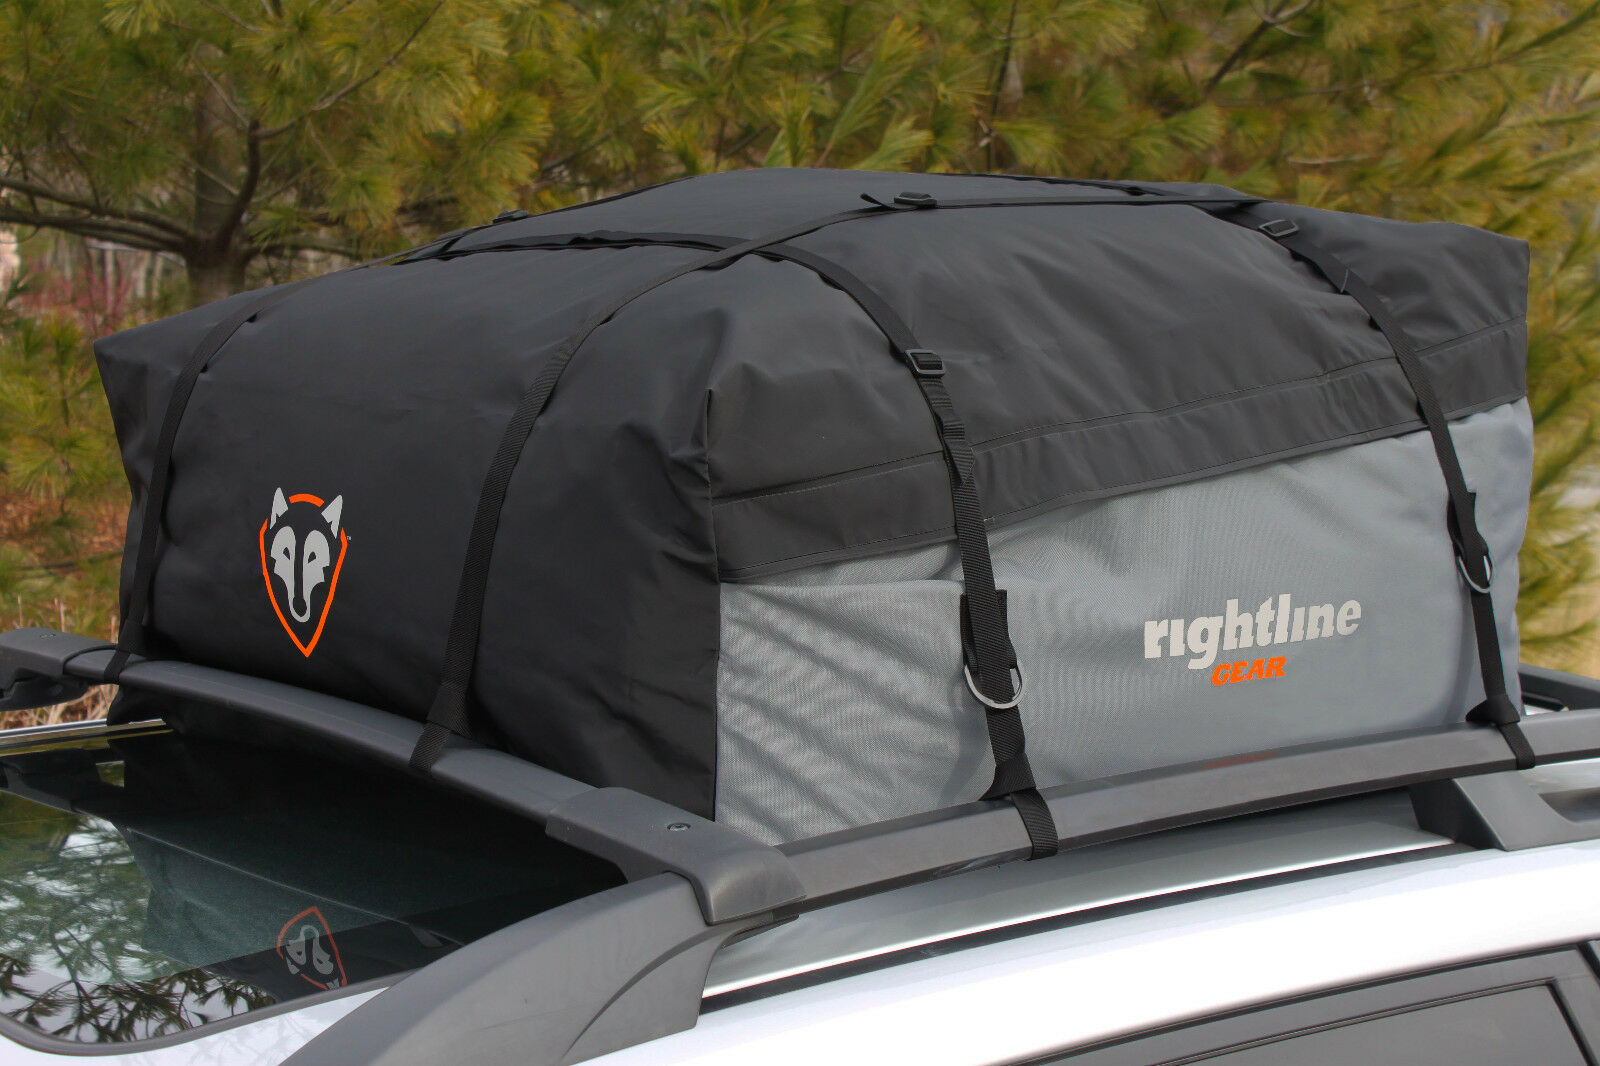 NEW NEW NEW Rightline Gear Sport 1 Car Top Carrier - 100S10 - 12 cu ft - 100% WATERPROOF a393e3